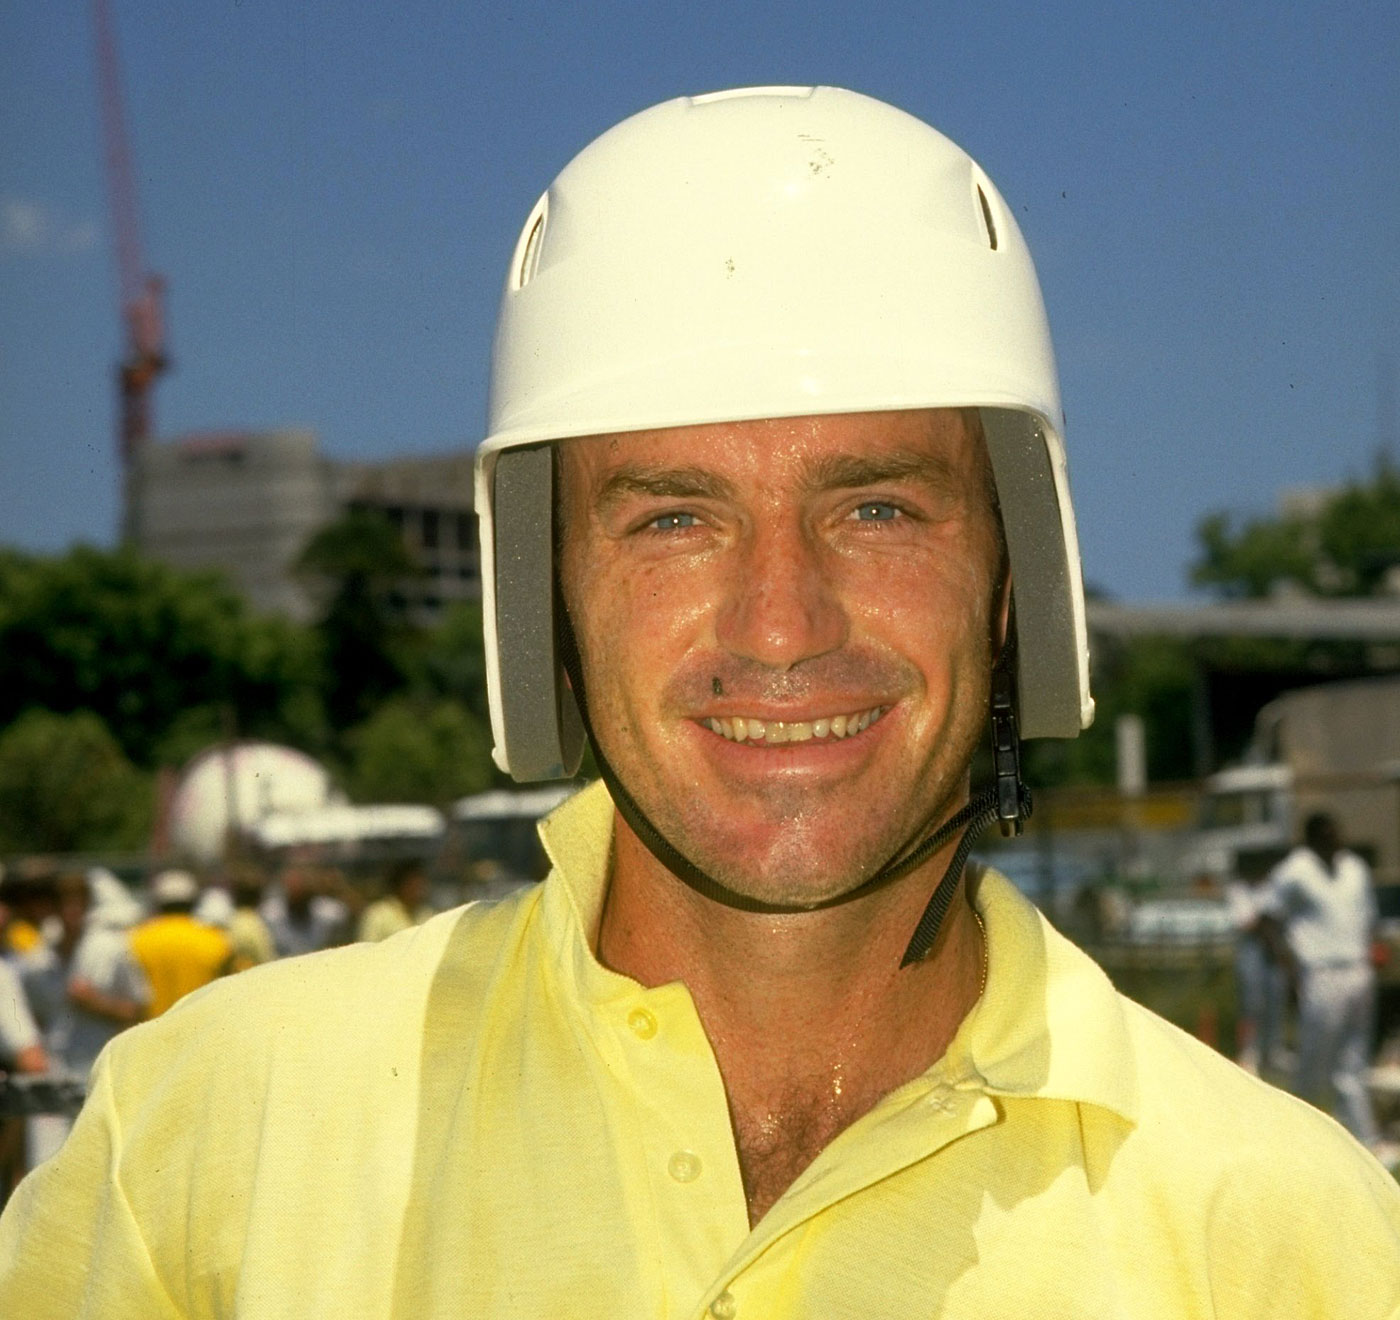 Greg Matthews wears a crash helmet